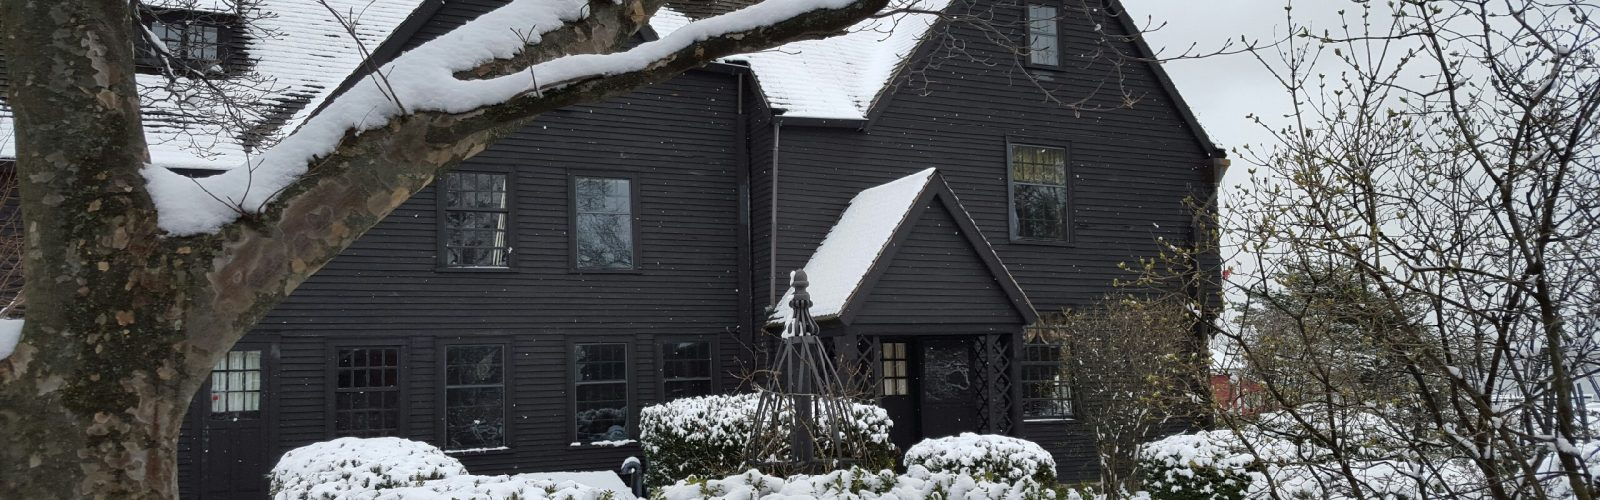 The House of the Seven Gables after a snowstorm - exterior image